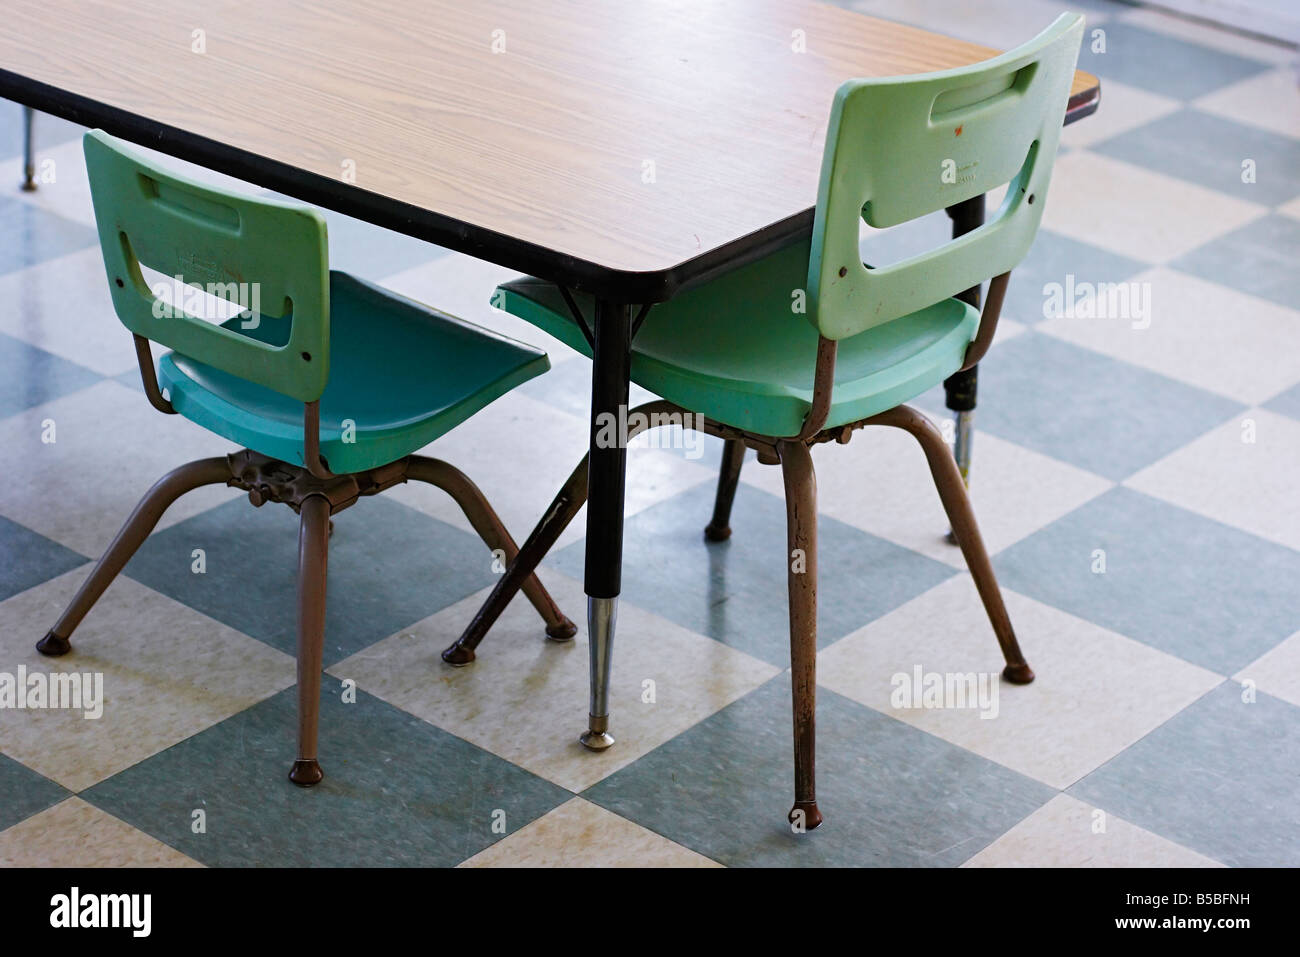 Very Small Chairs And Low Table In A Children S Playroom